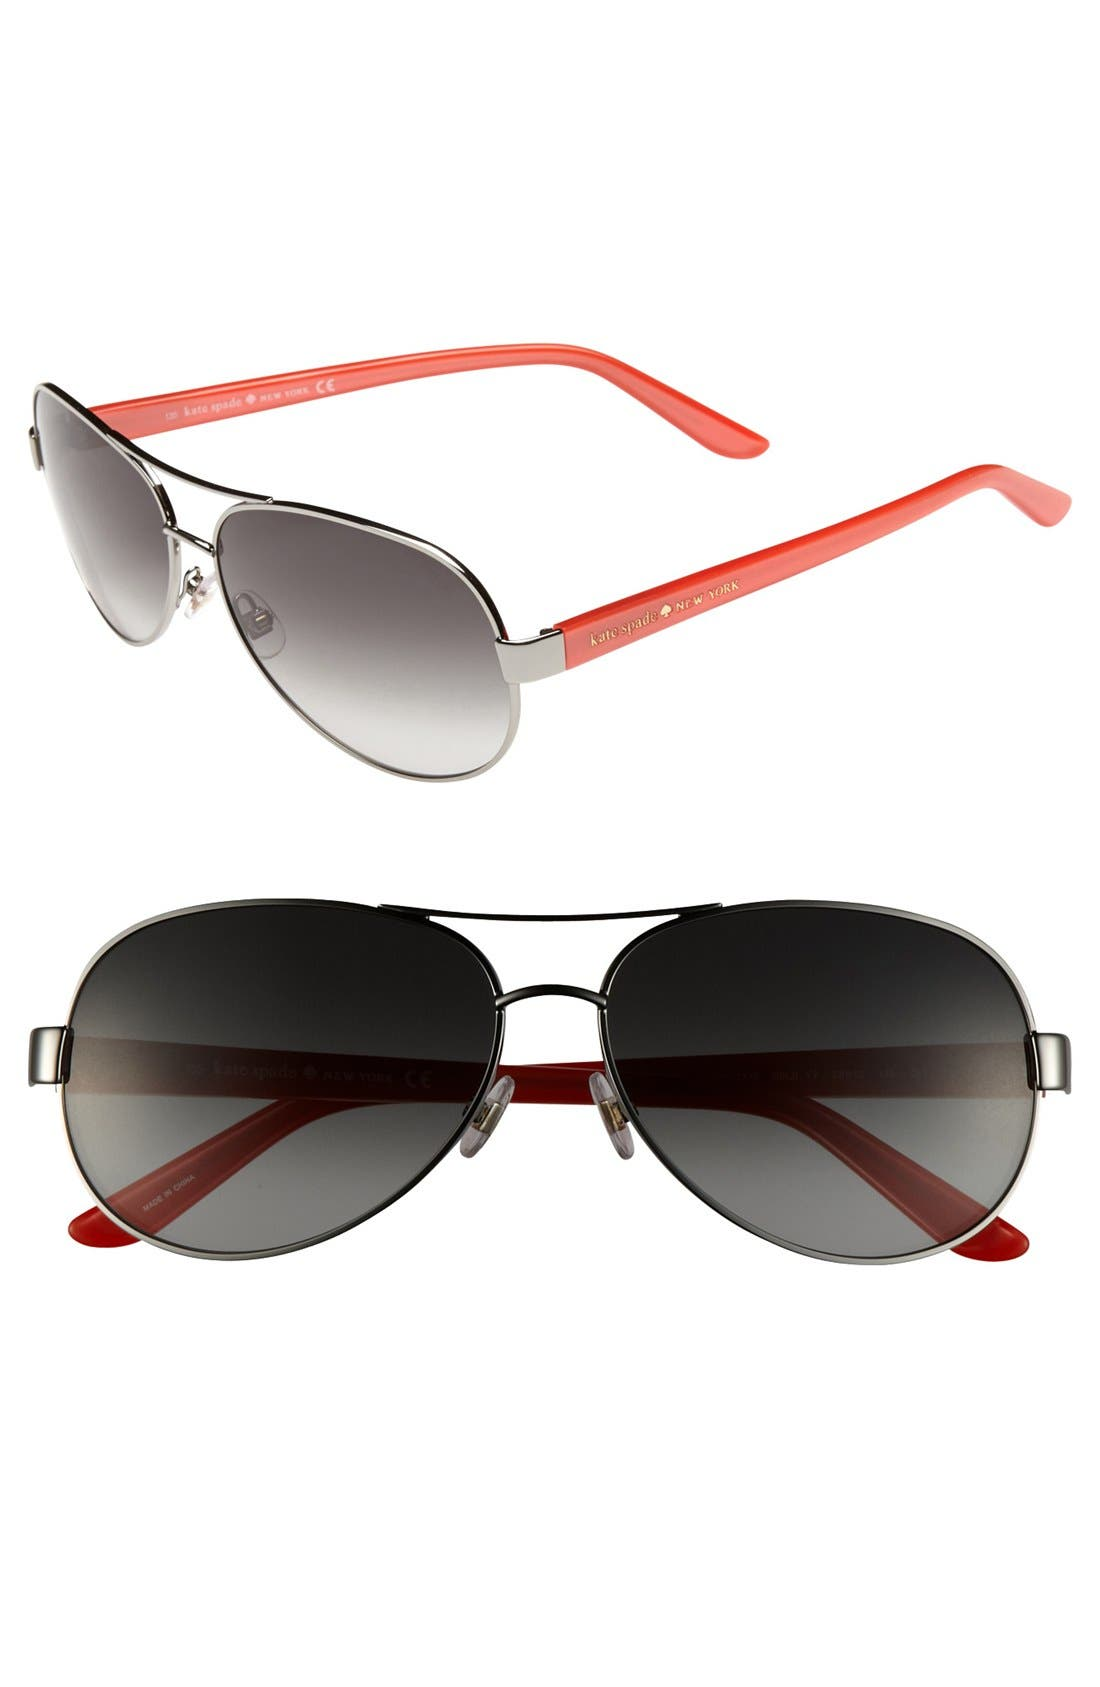 Alternate Image 1 Selected - kate spade new york 'donats' 58mm metal aviator sunglasses